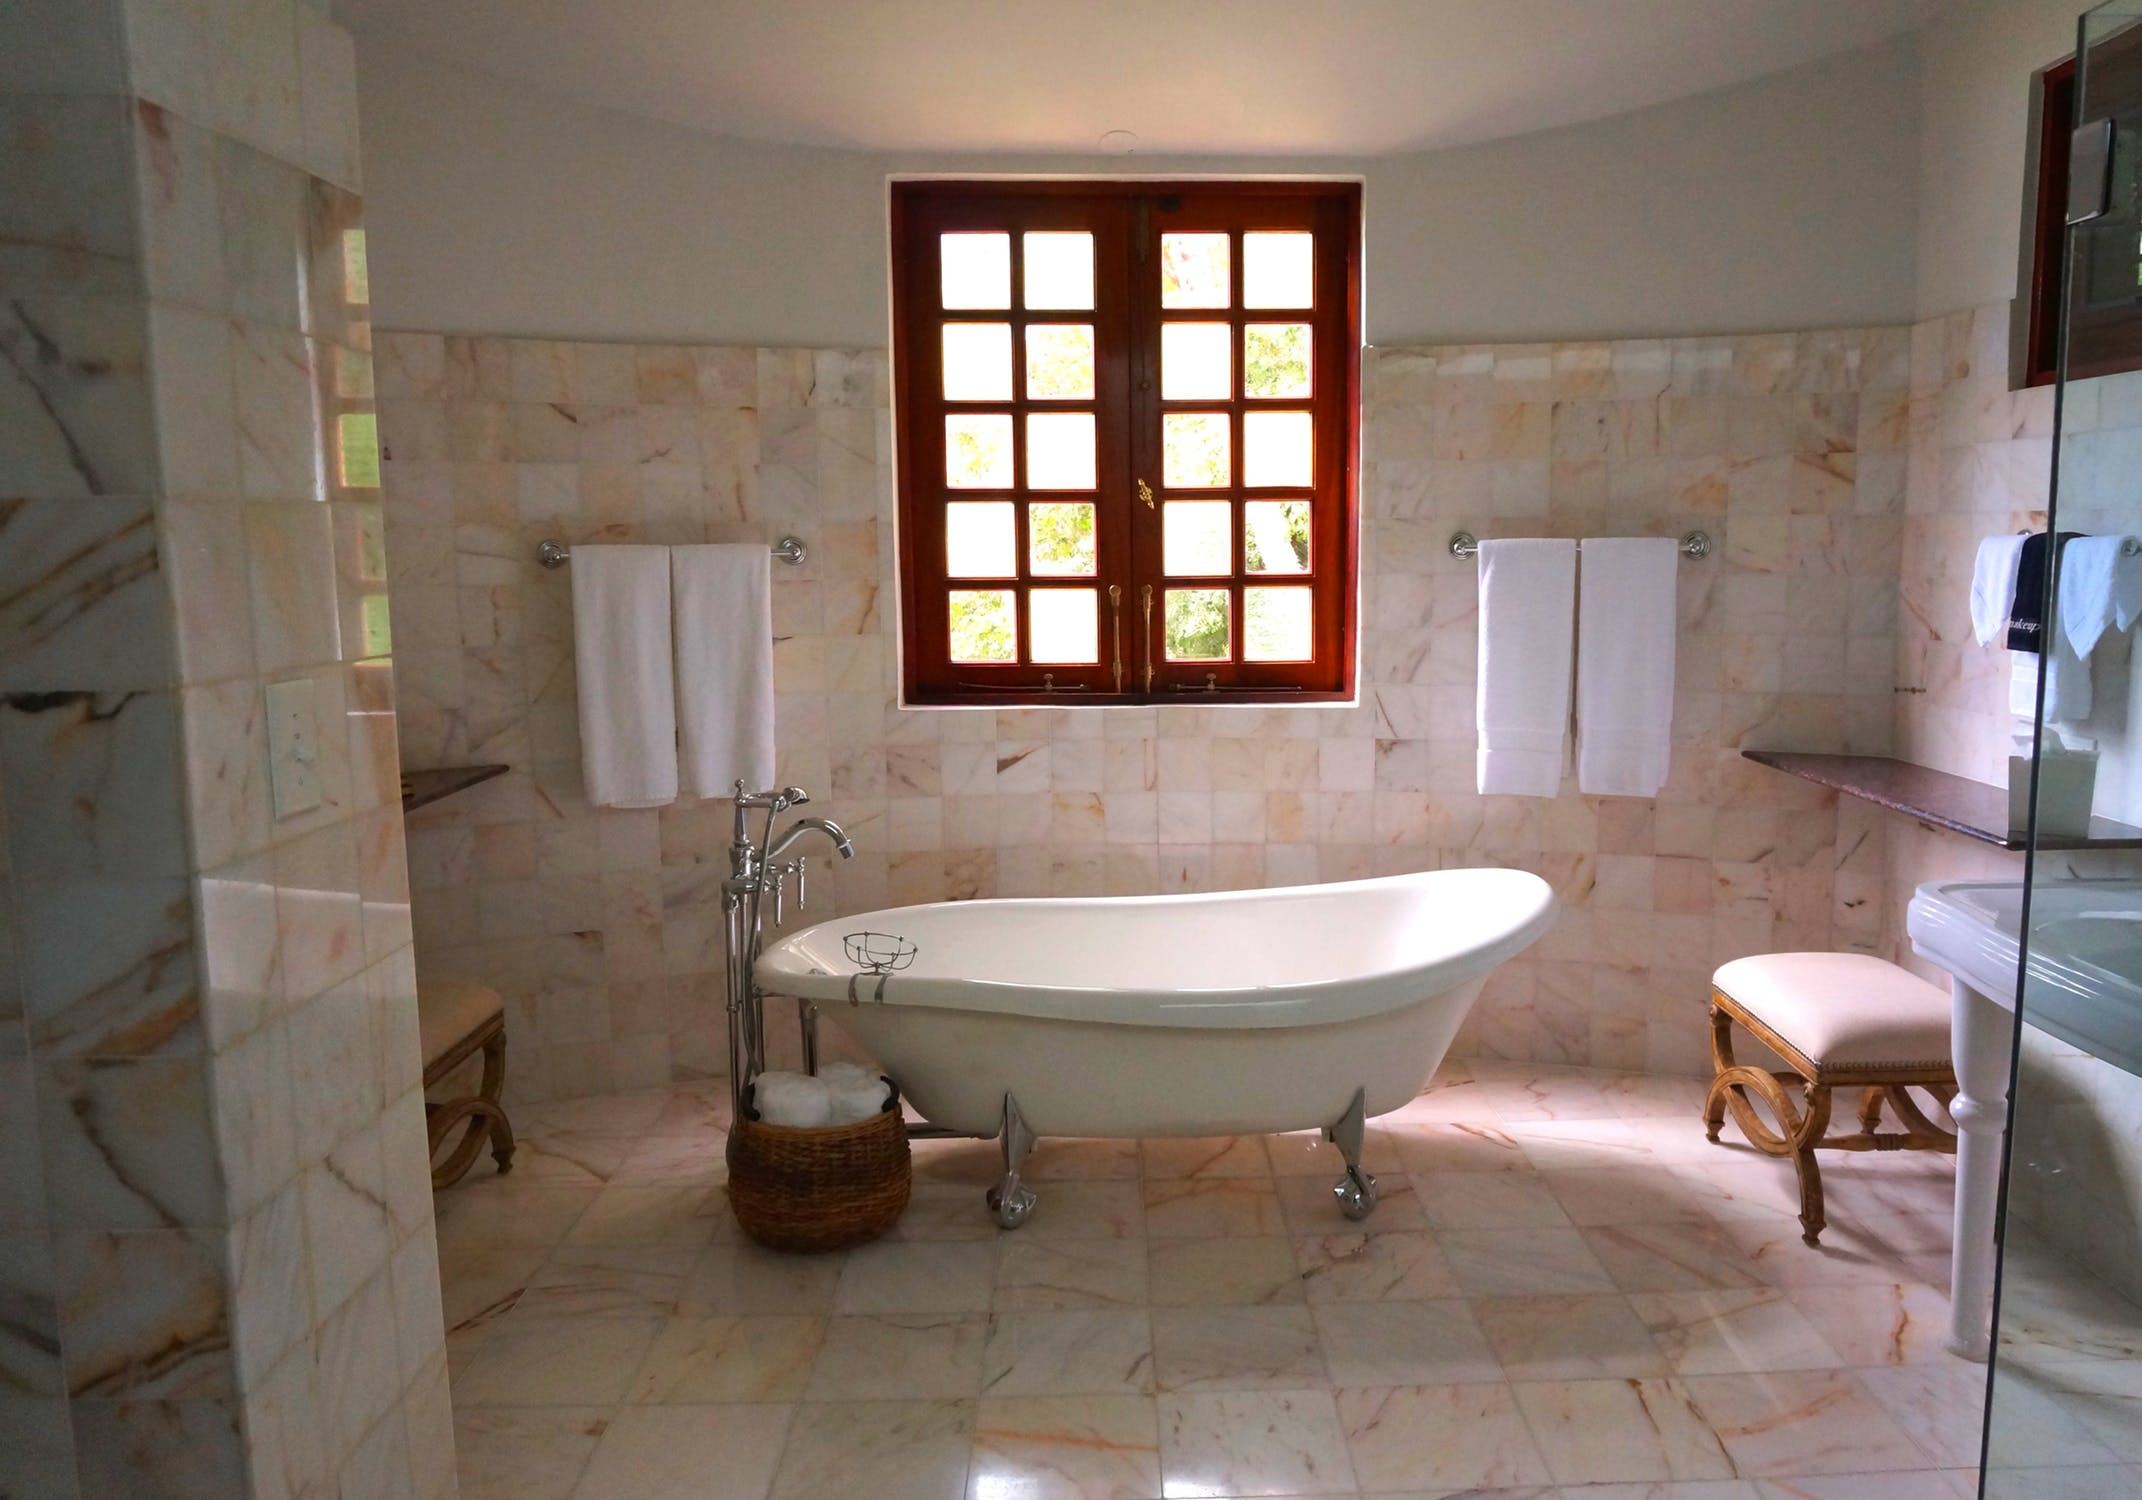 5 Bathroom Remodeling Mistakes To Avoid In Orlando